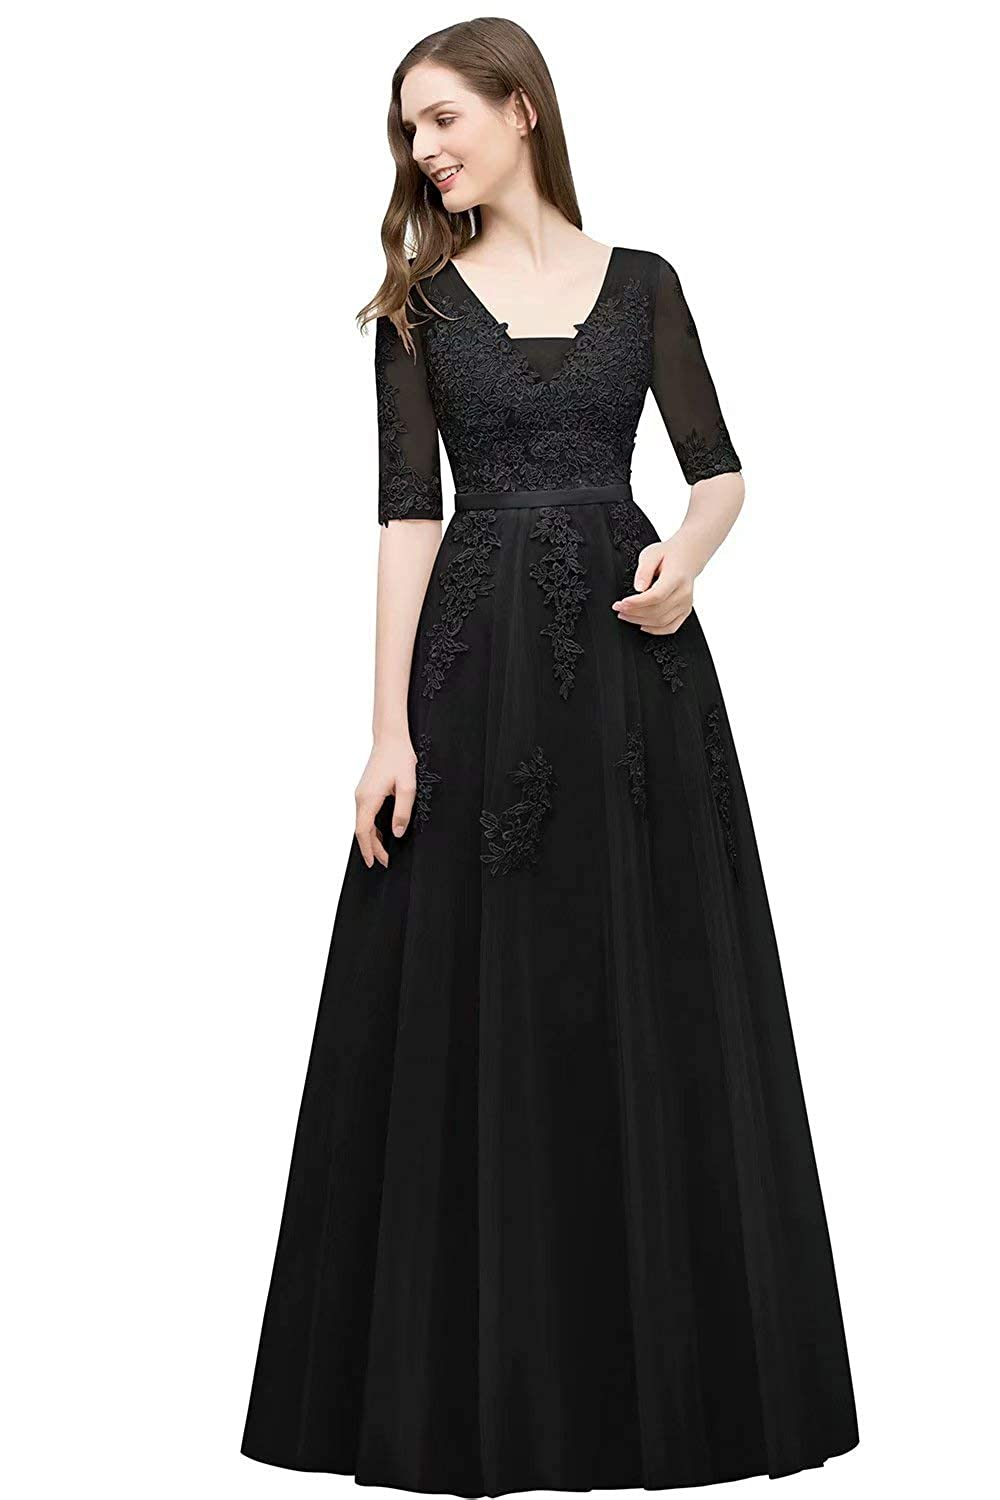 Black Unions Women V Neck Tulle Prom Party Gown A Line Appliques Lace Formal Backless Evening Dress